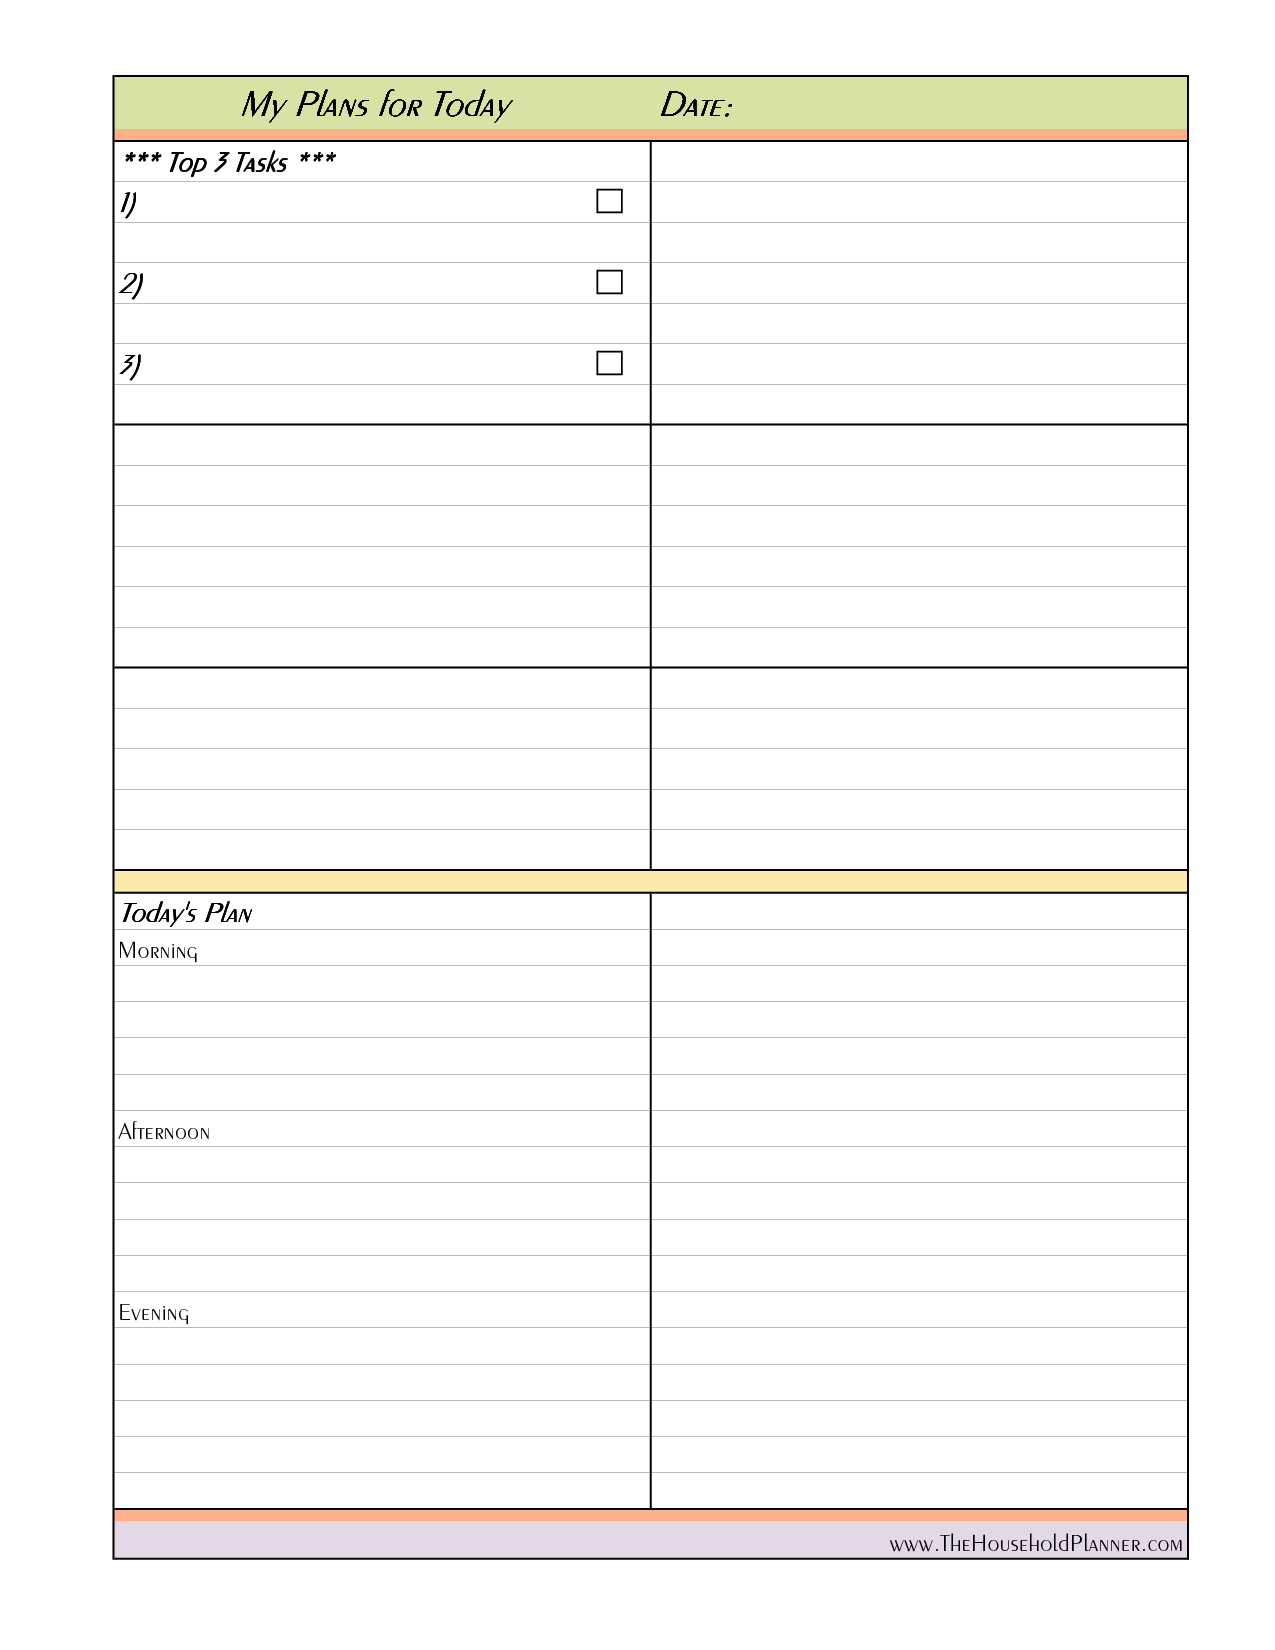 Daily Project Organizer Templates Free